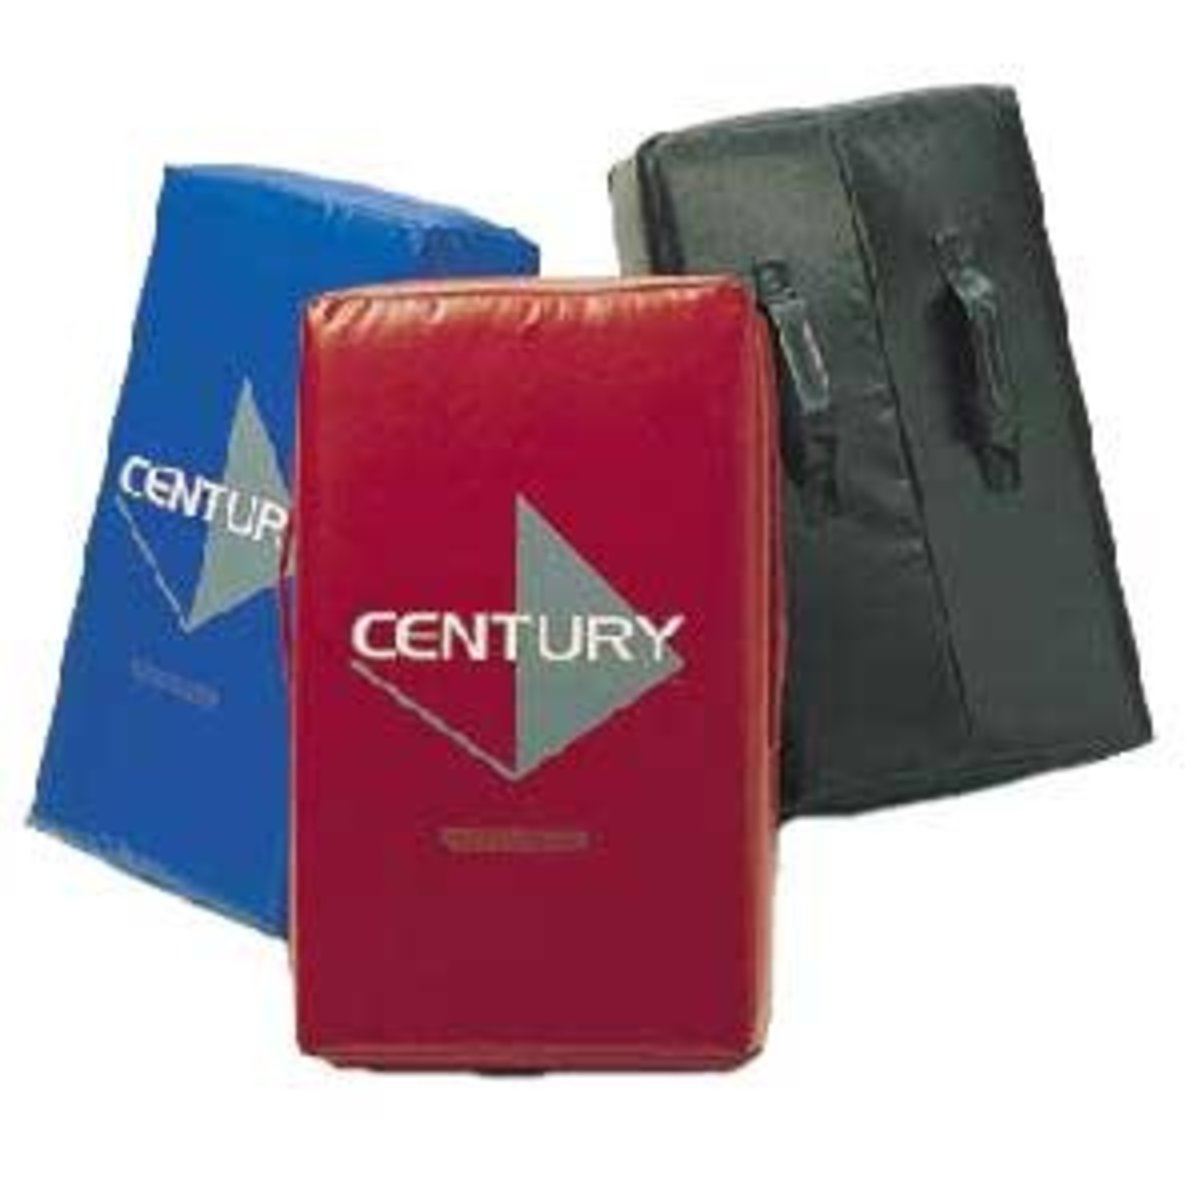 I recommend Century Martial Art's kick pads for practicing effective strikes.